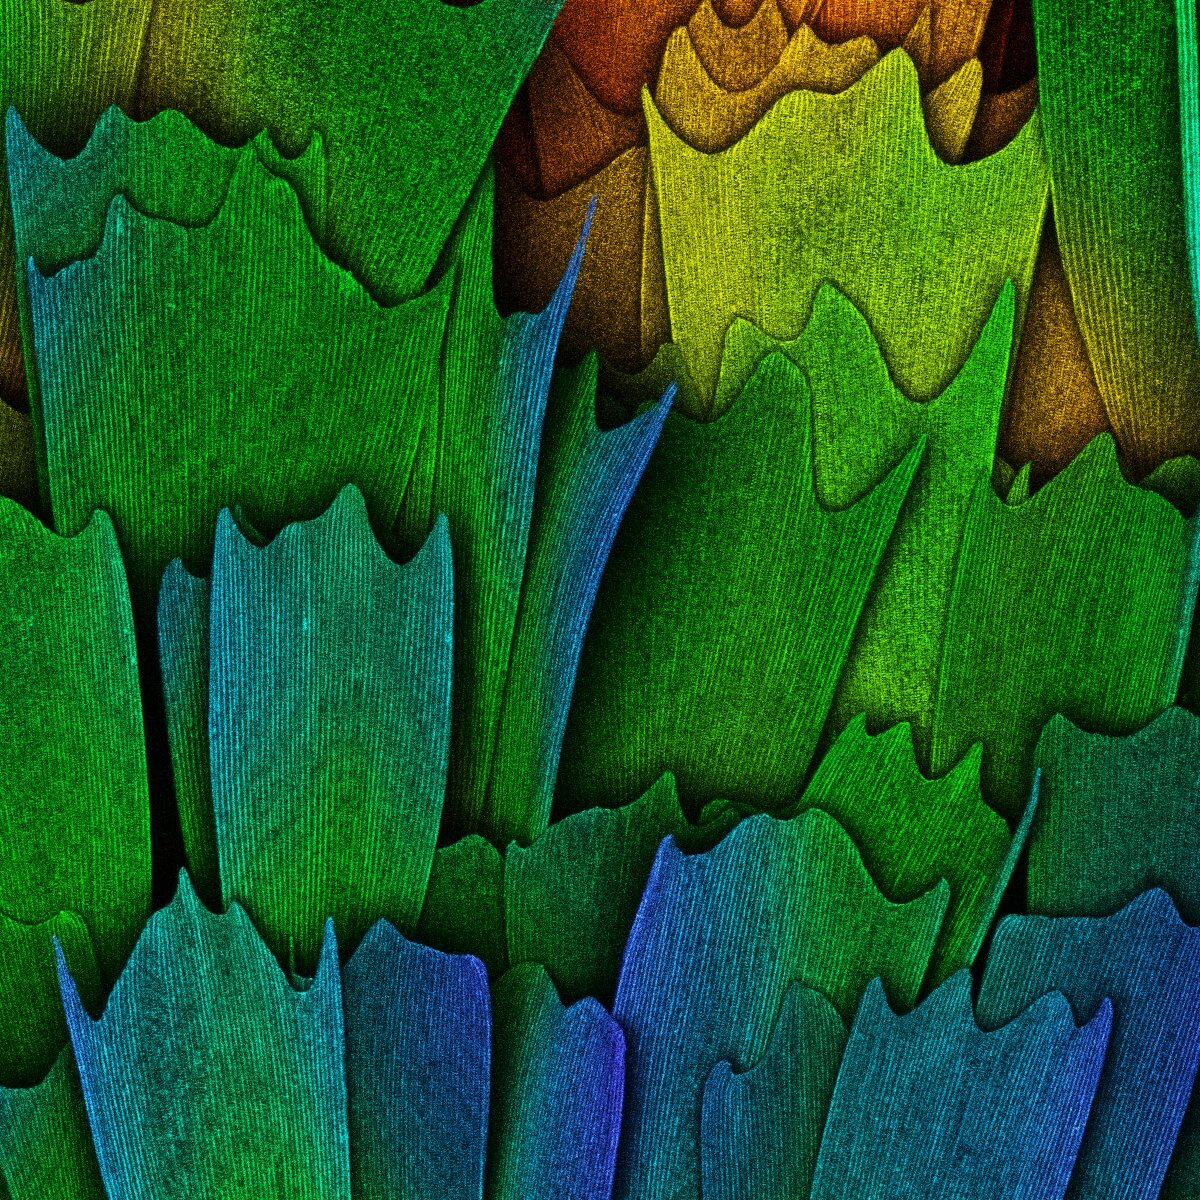 Scales of a butterfly wing